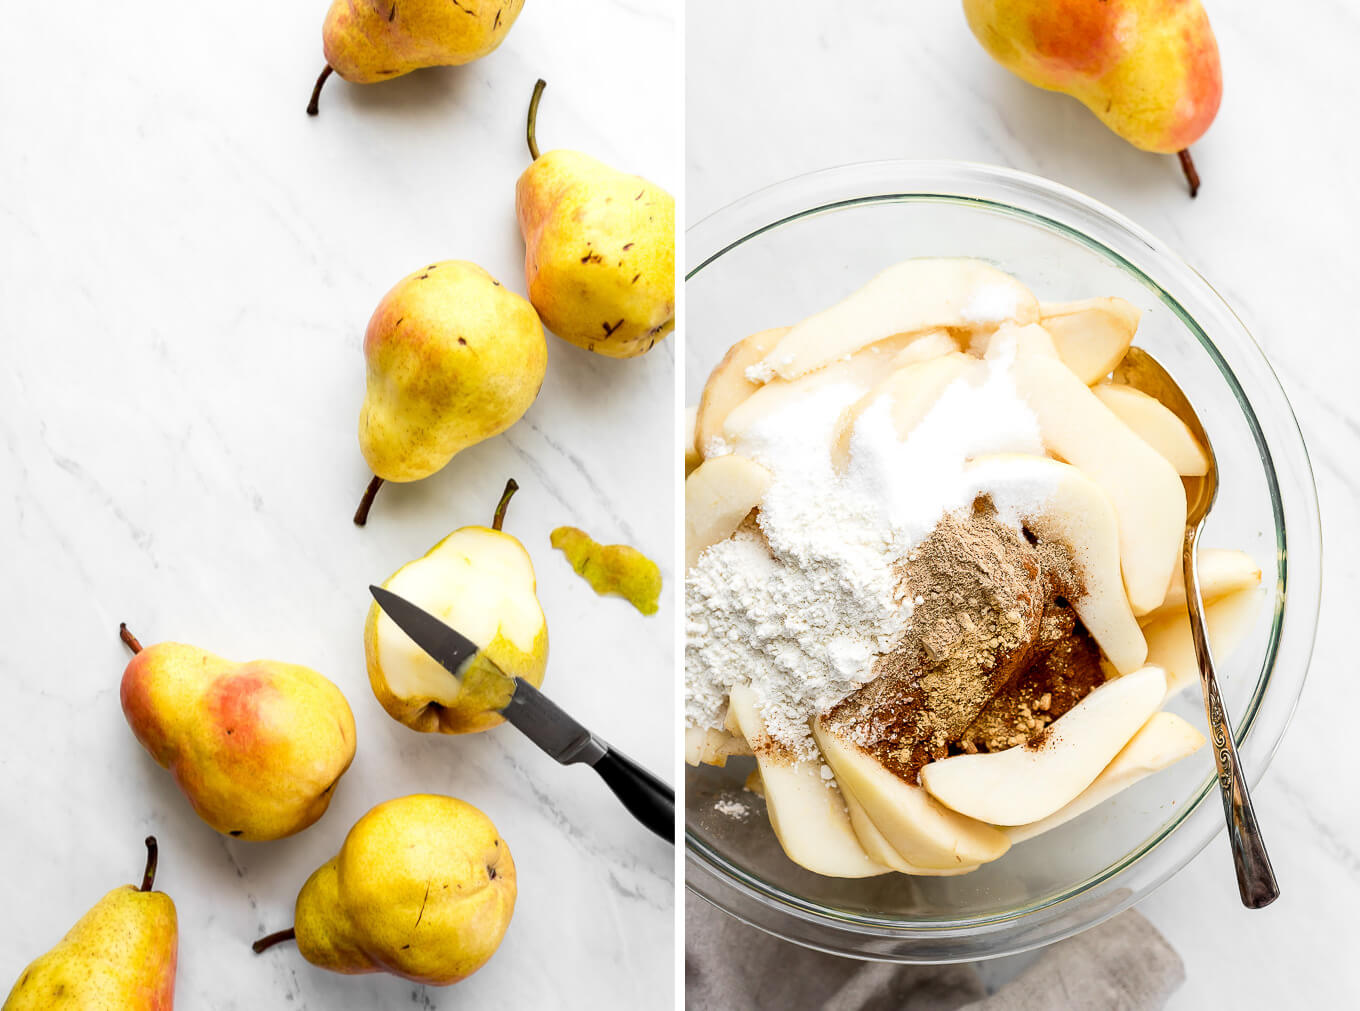 Pears on a marble surface with one being pealed using a knife. A bowl sliced pies, flour, sugar, and spices.